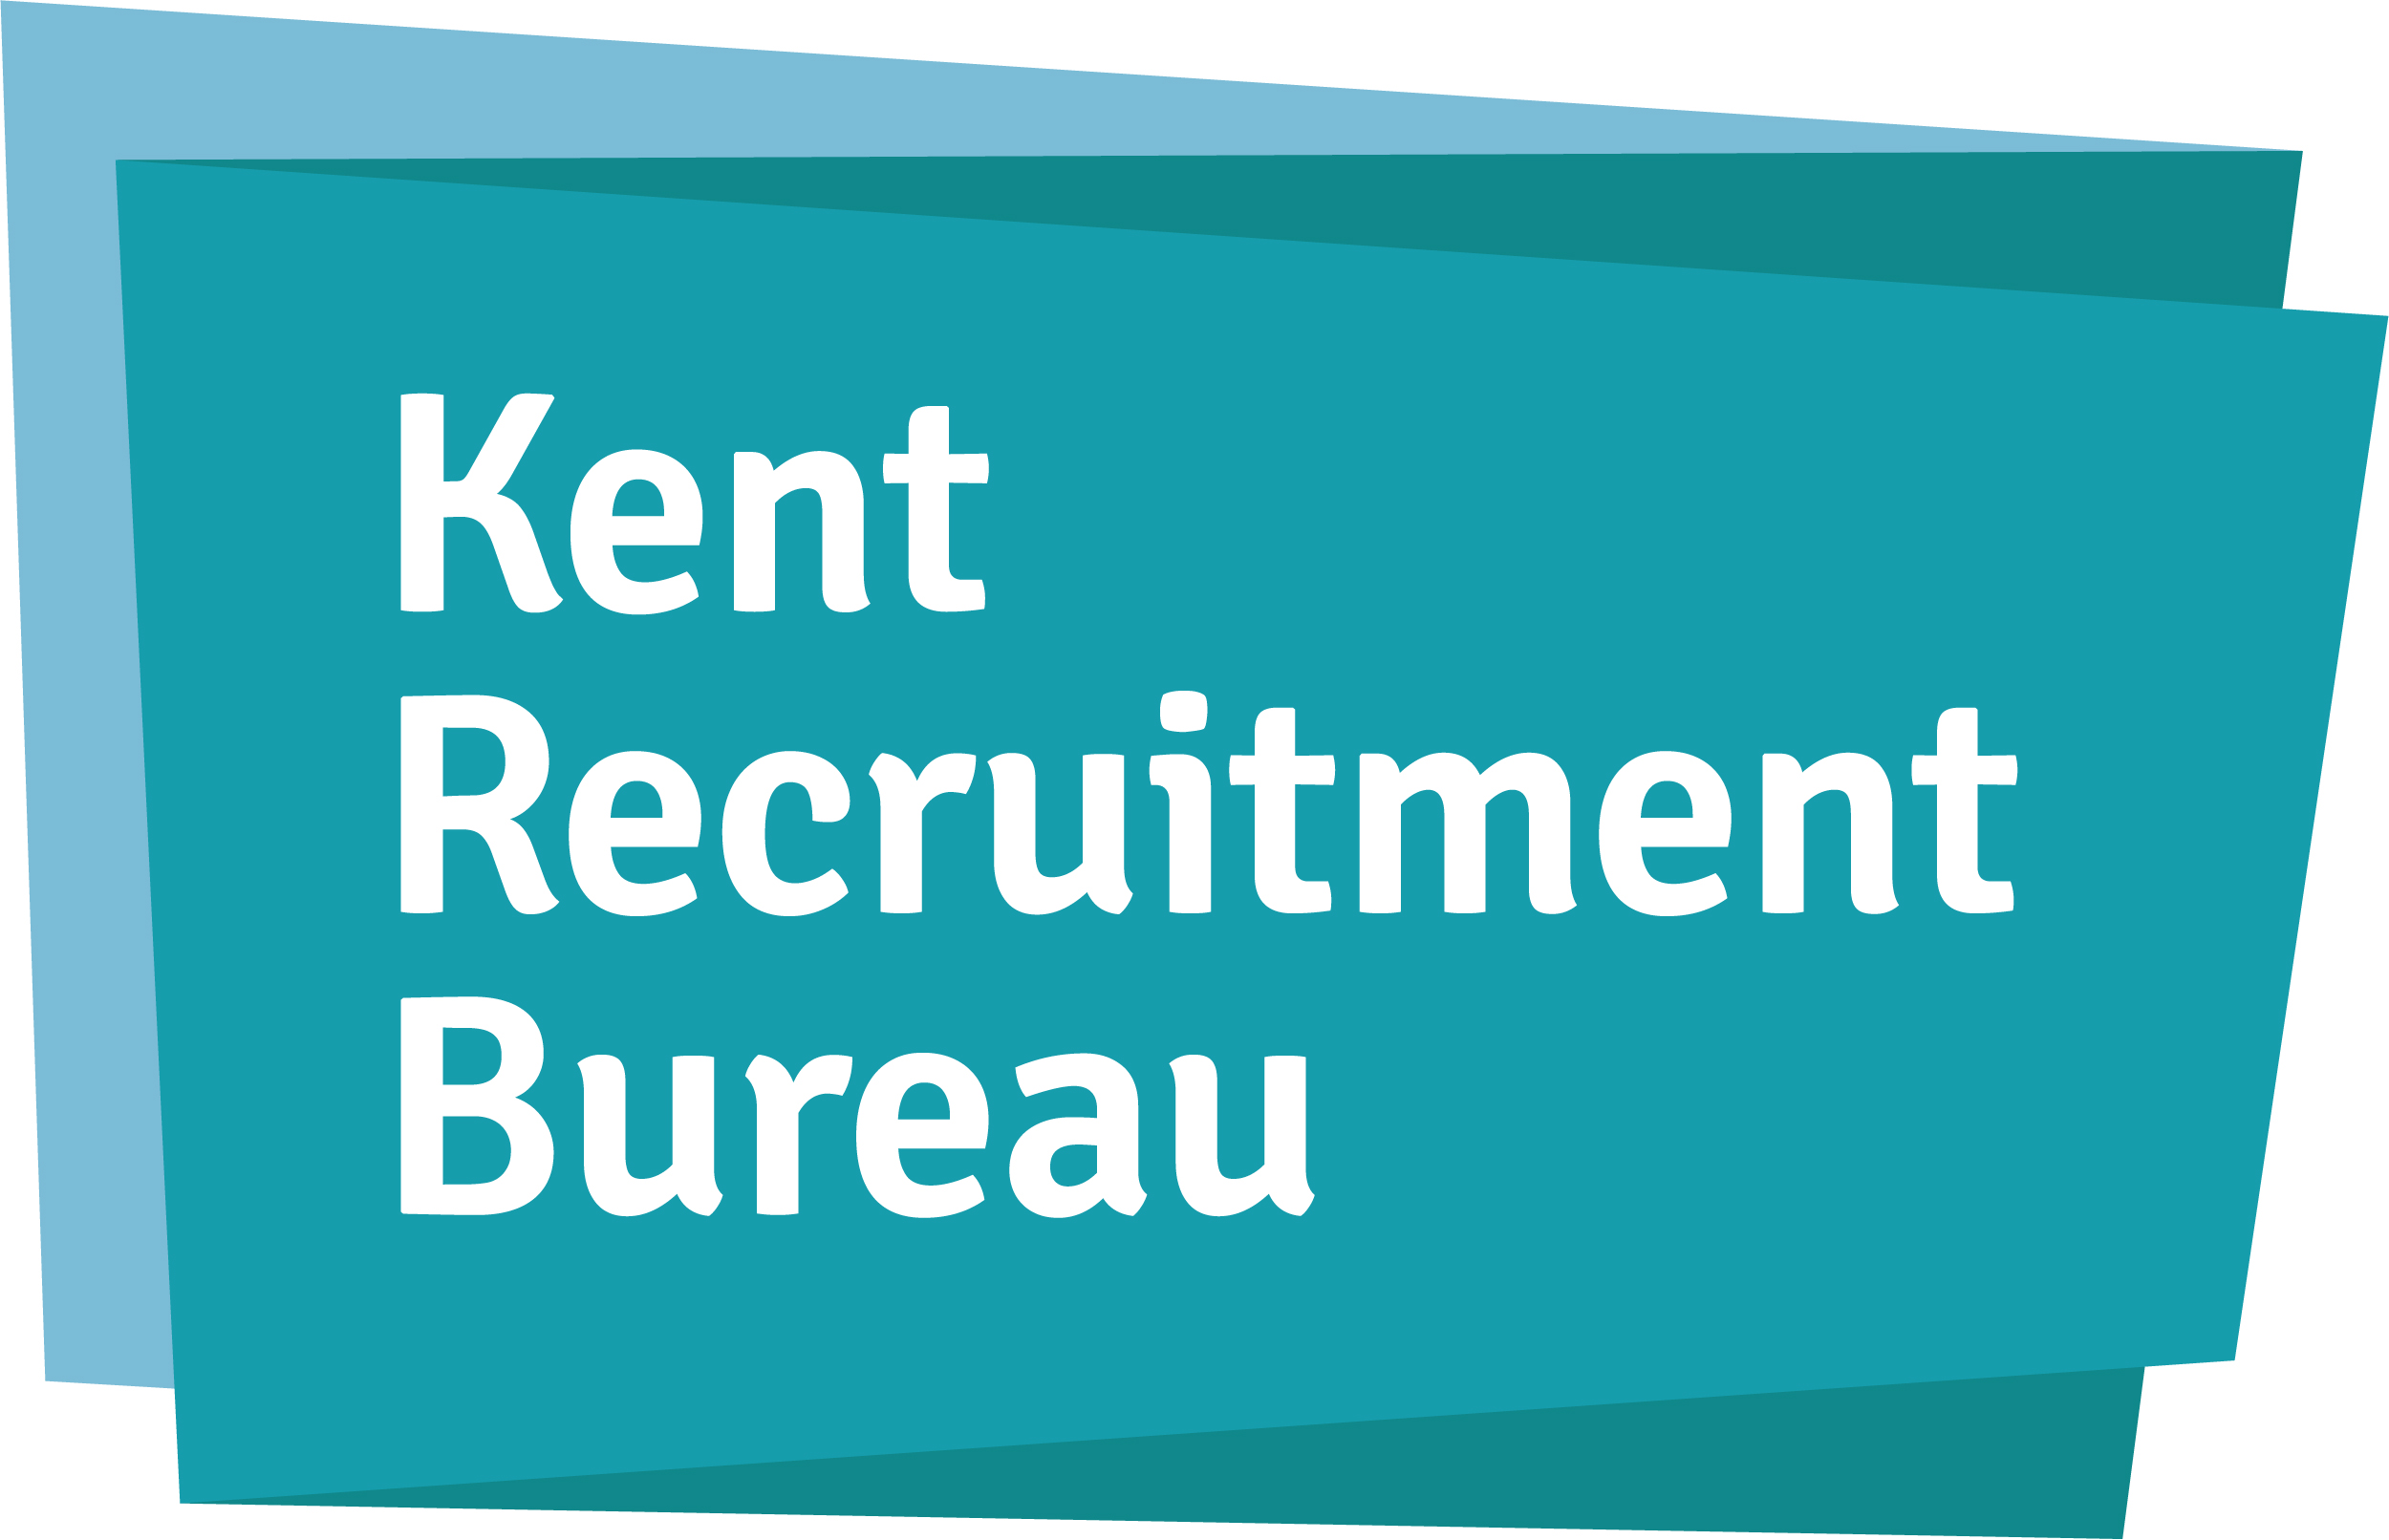 Kent Recruitment Bureau Ltd